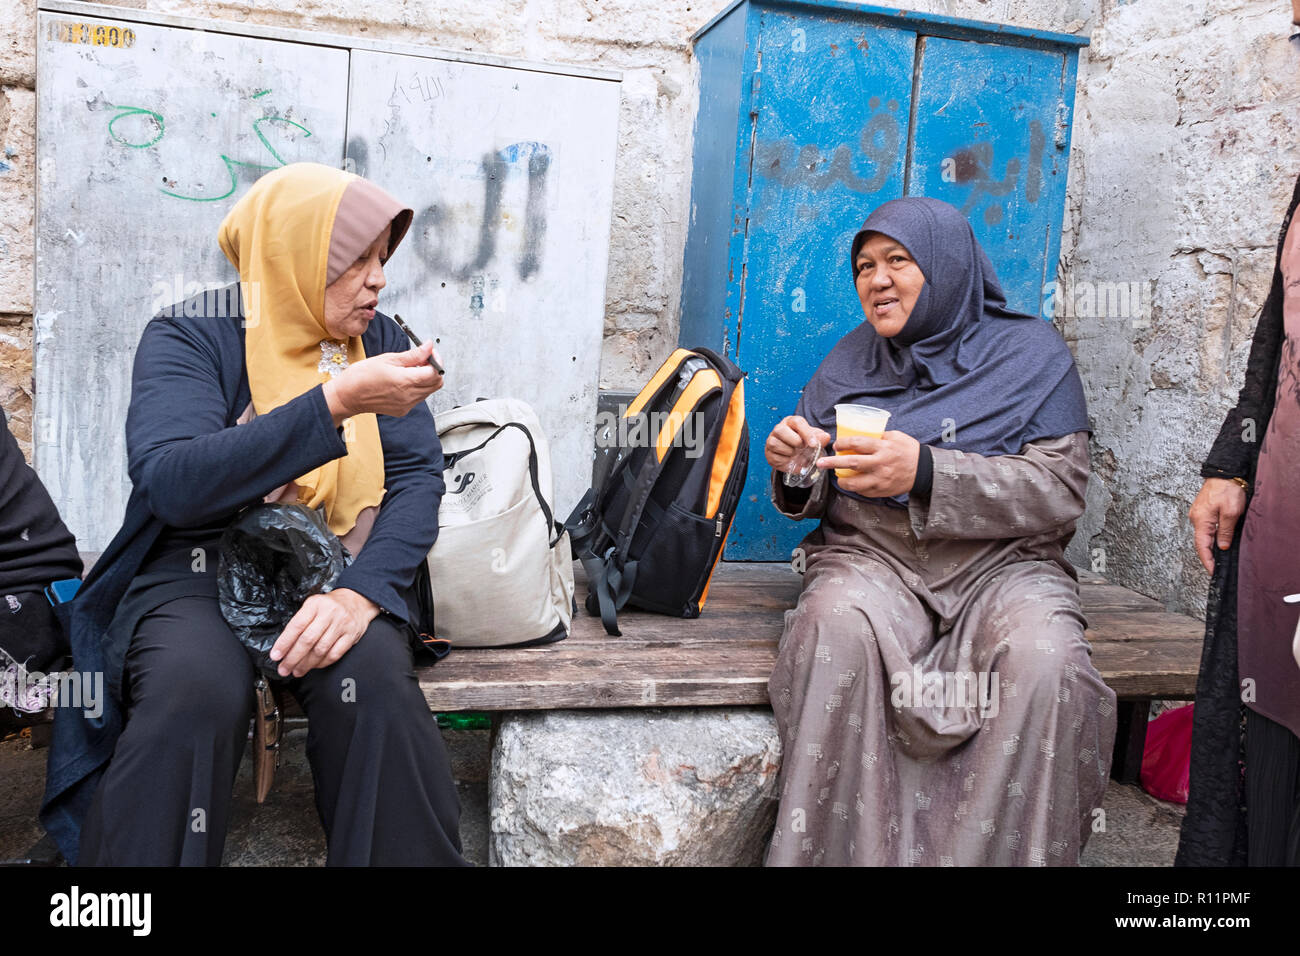 Muslim women in the Old City of Jerusalem, one with a drink and the other with a cigar. - Stock Image